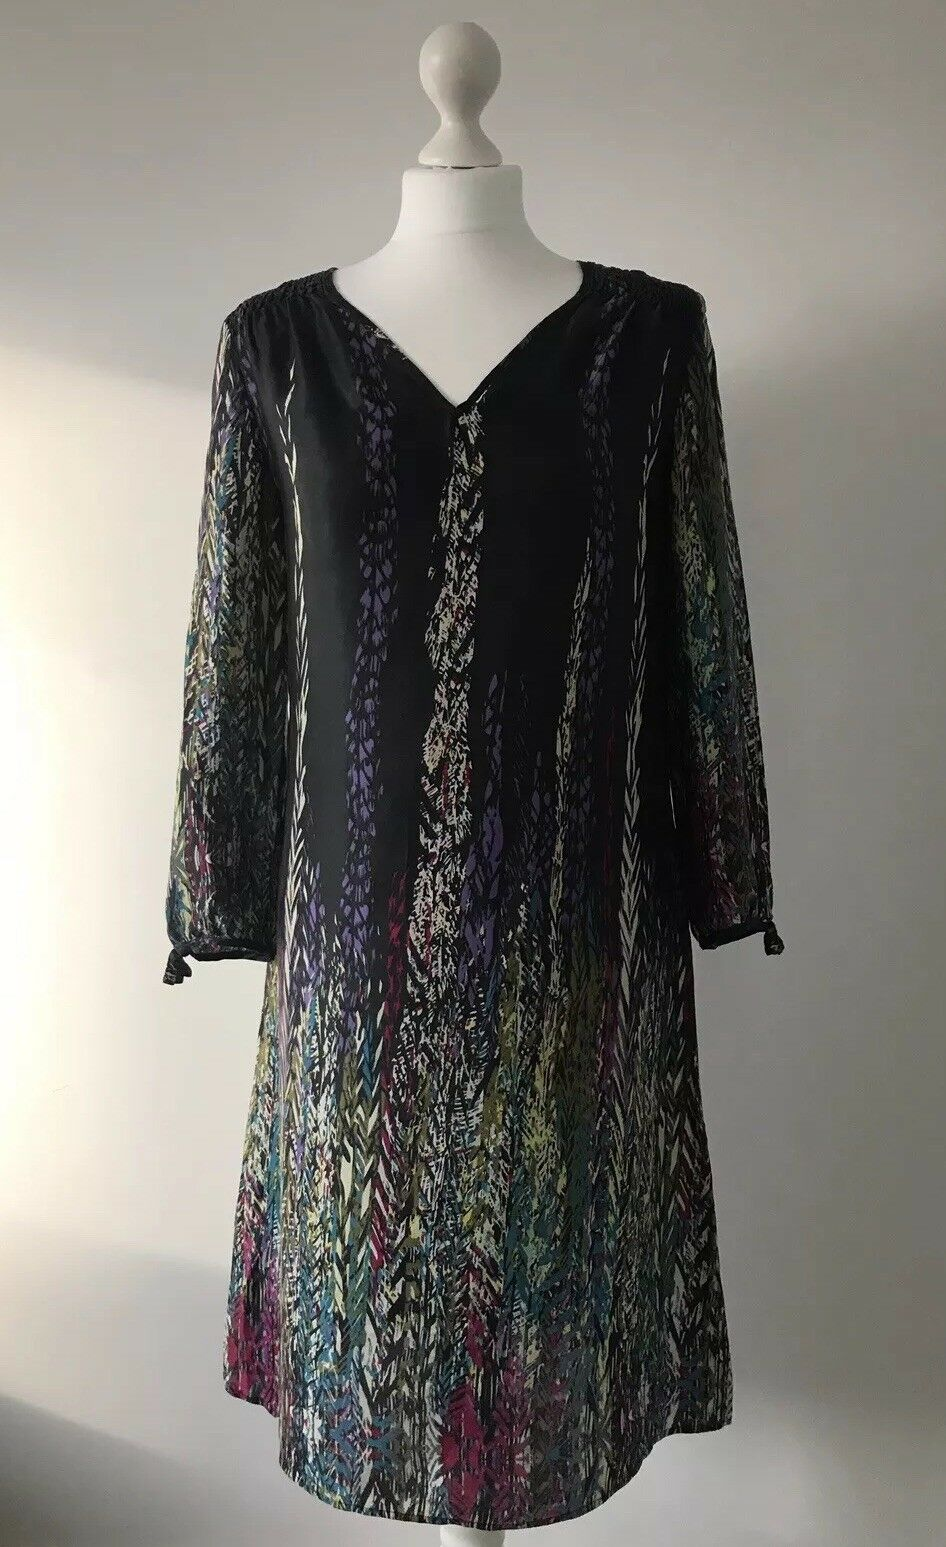 IPEKYOL  Silk Dress Size 8